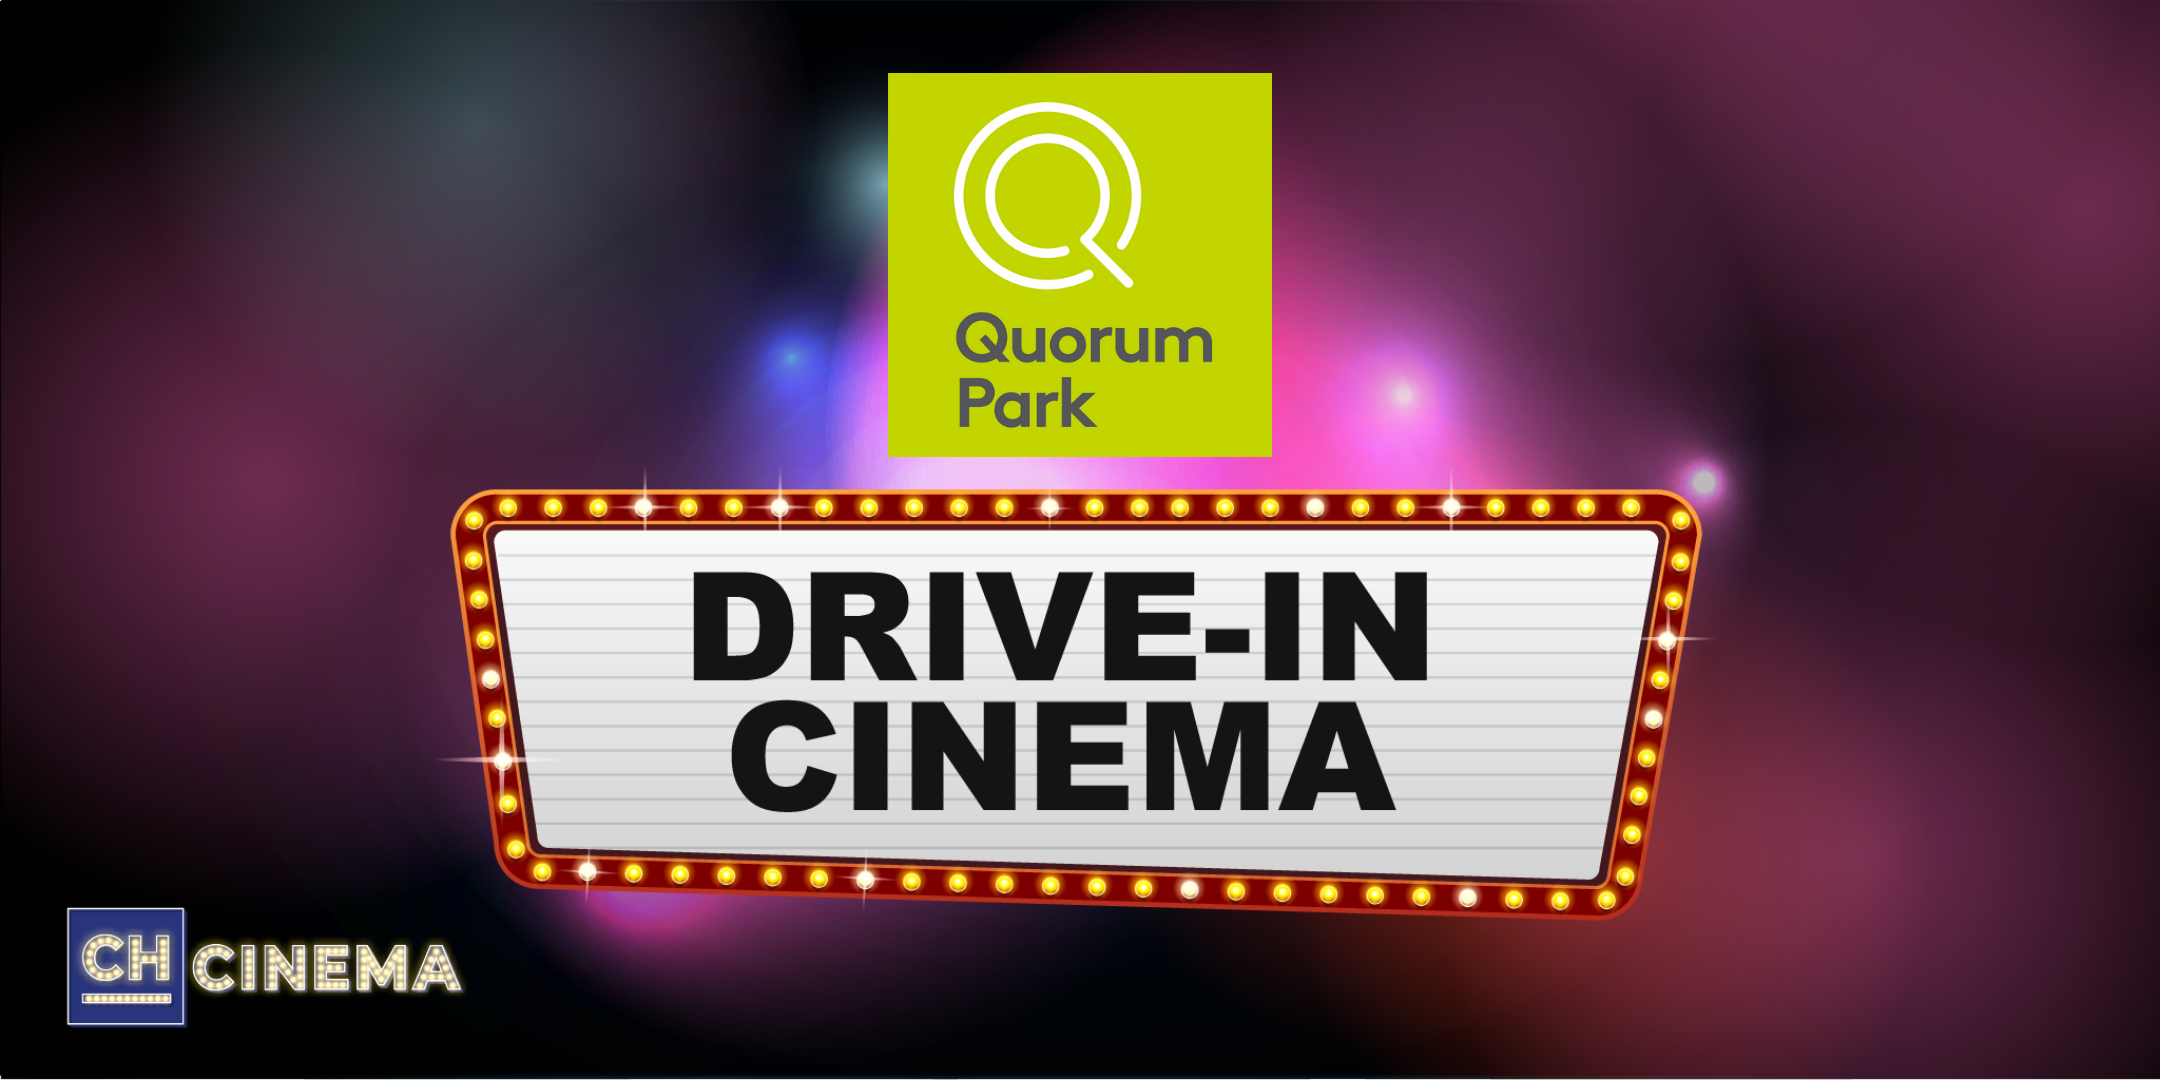 /quorum Cinema Logo Landscape